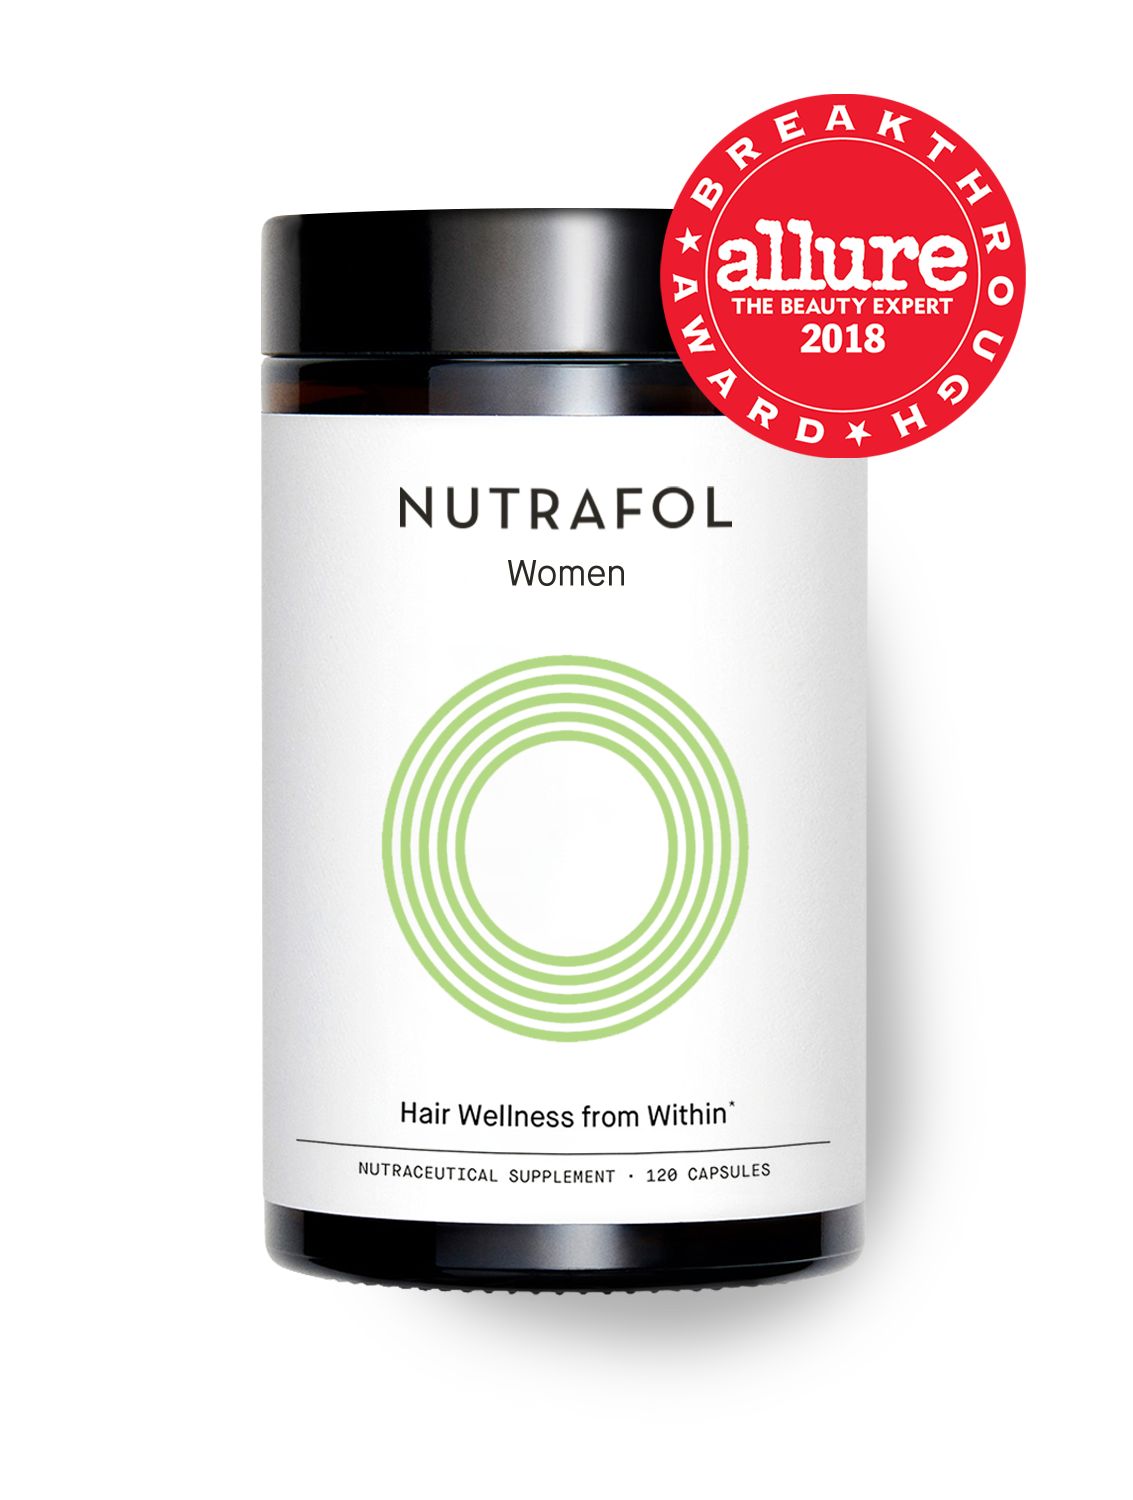 Dermatologist Recommended Hair Growth Products Nutrafol For Women